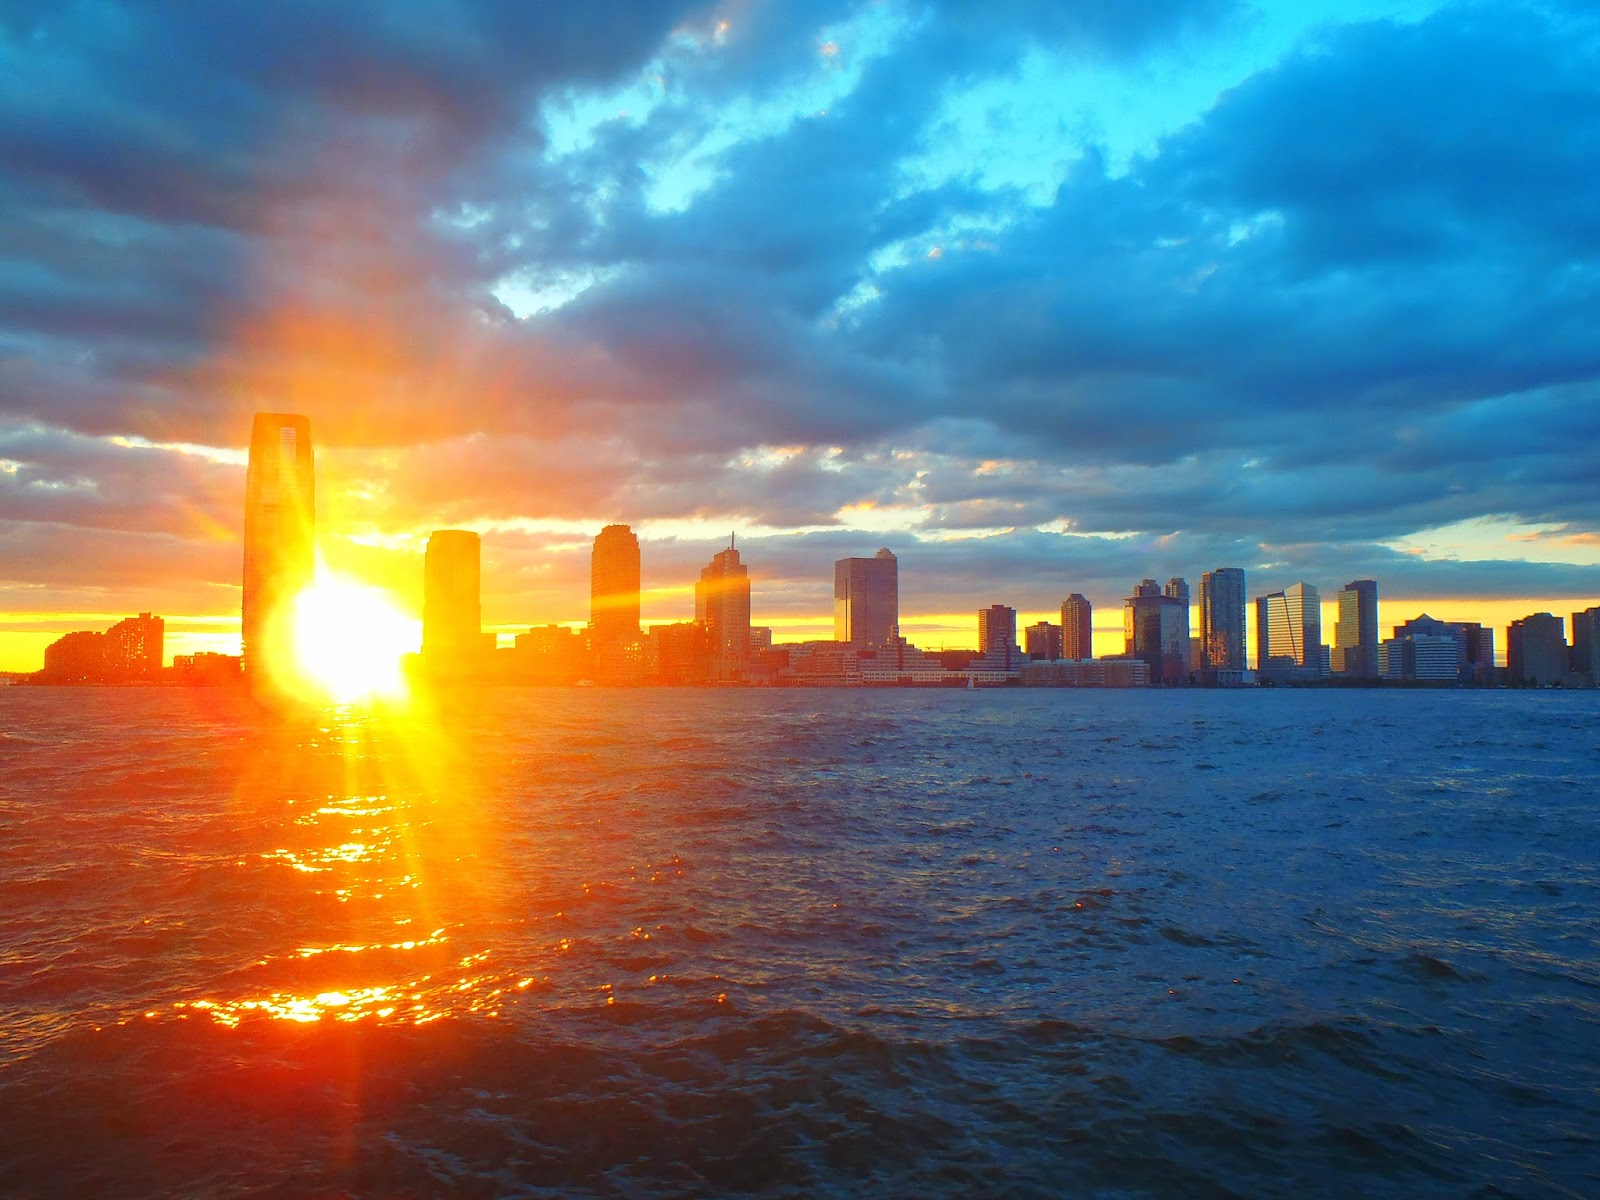 the sun dipping between the buildings in New York